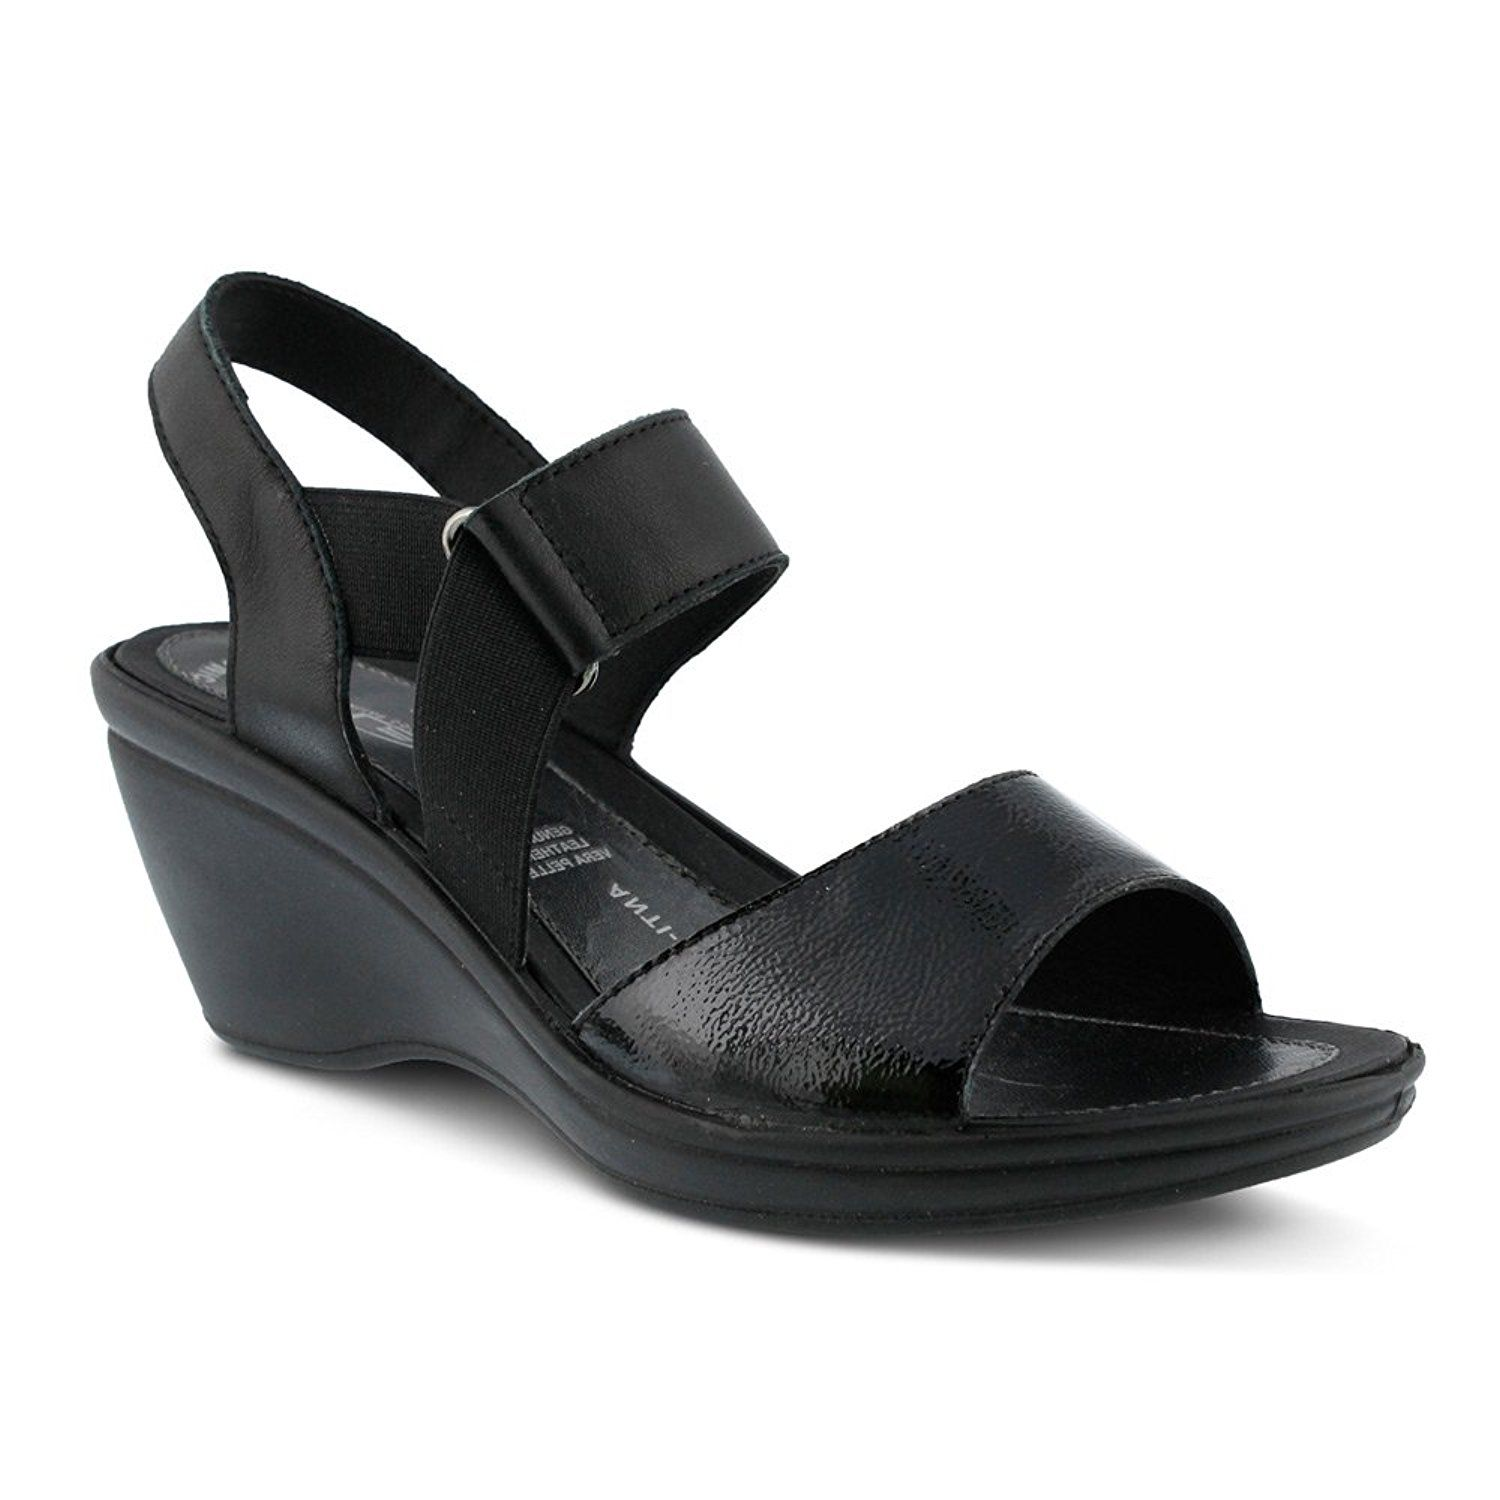 76a026bfe51a Flexus Womens Sp3 Karan Sandal     Want to know more